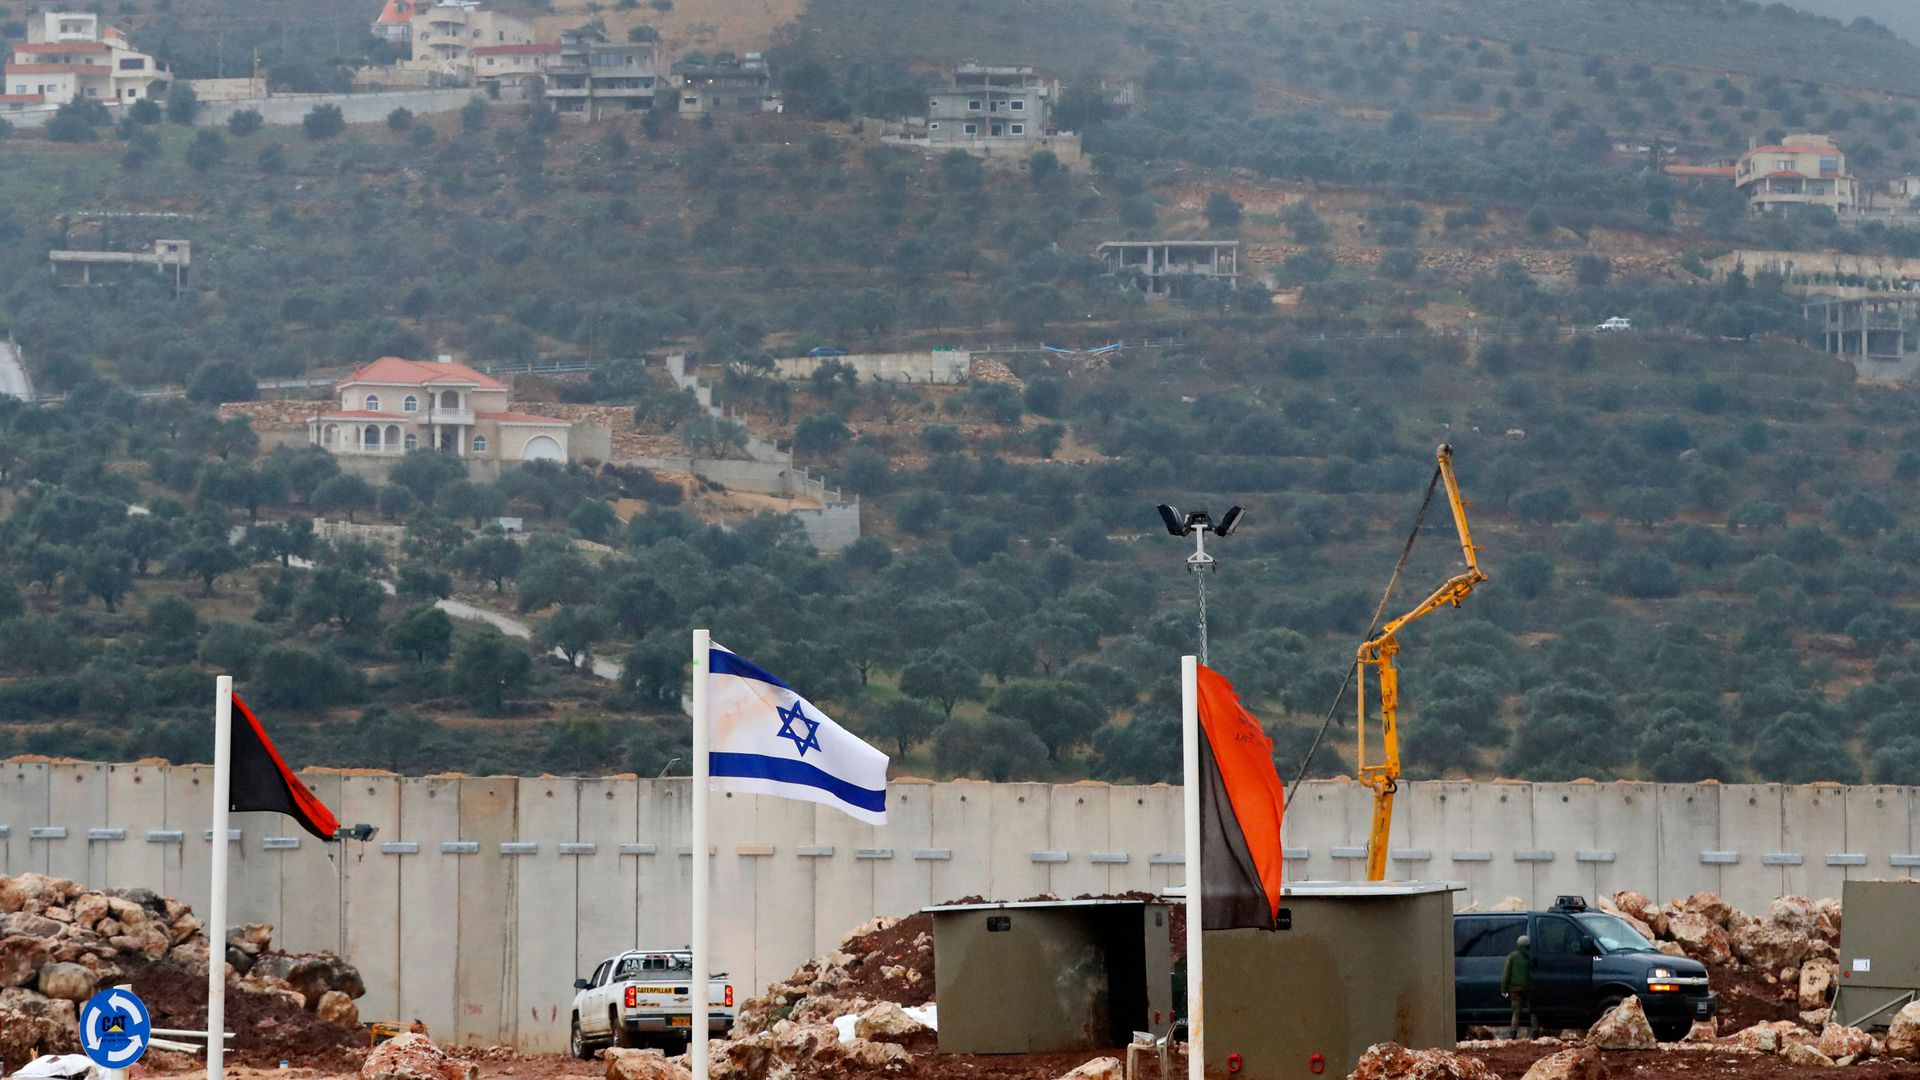 Israel border with Lebanon